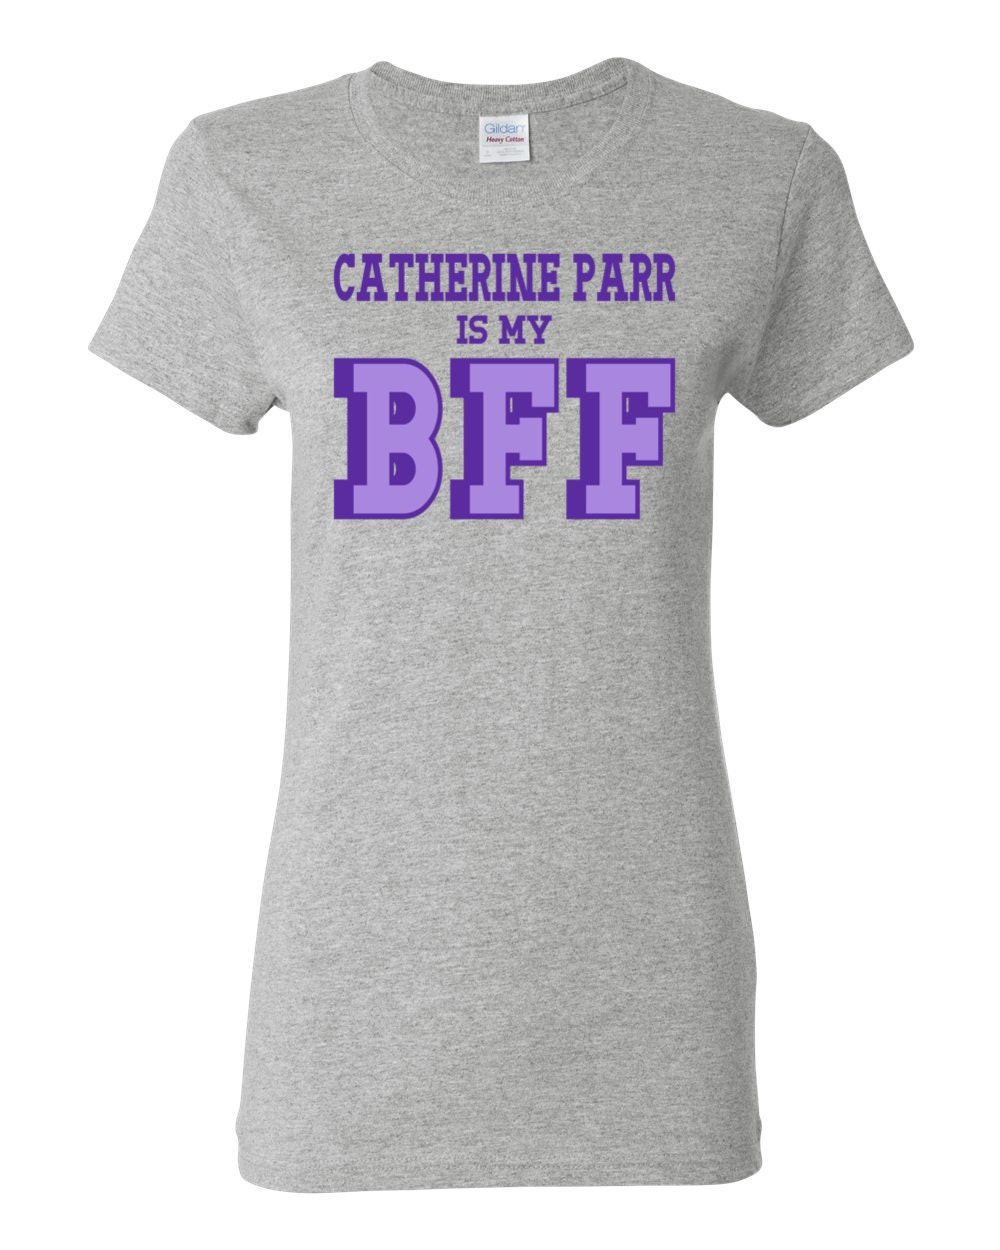 Great Women of History - Catherine Parr is my BFF Womens History T-shirt